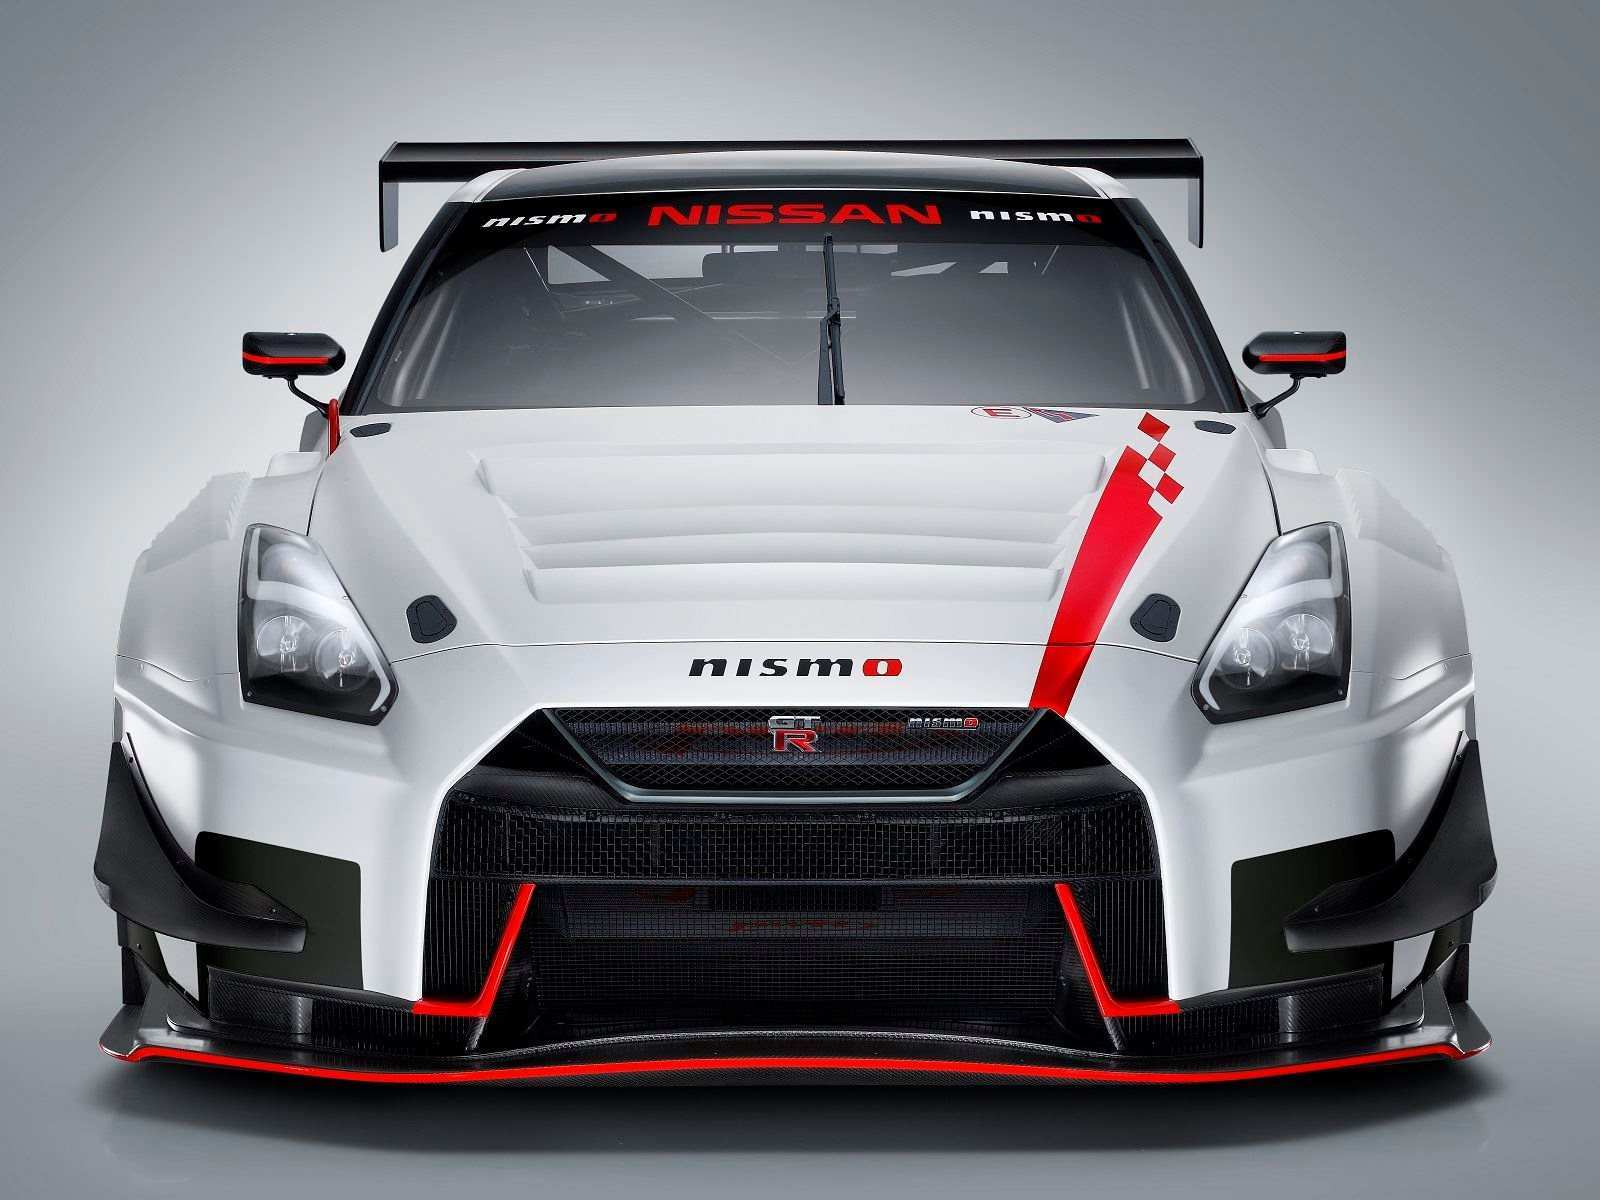 42 A Nissan Gtr 2019 Top Speed Concept And Review